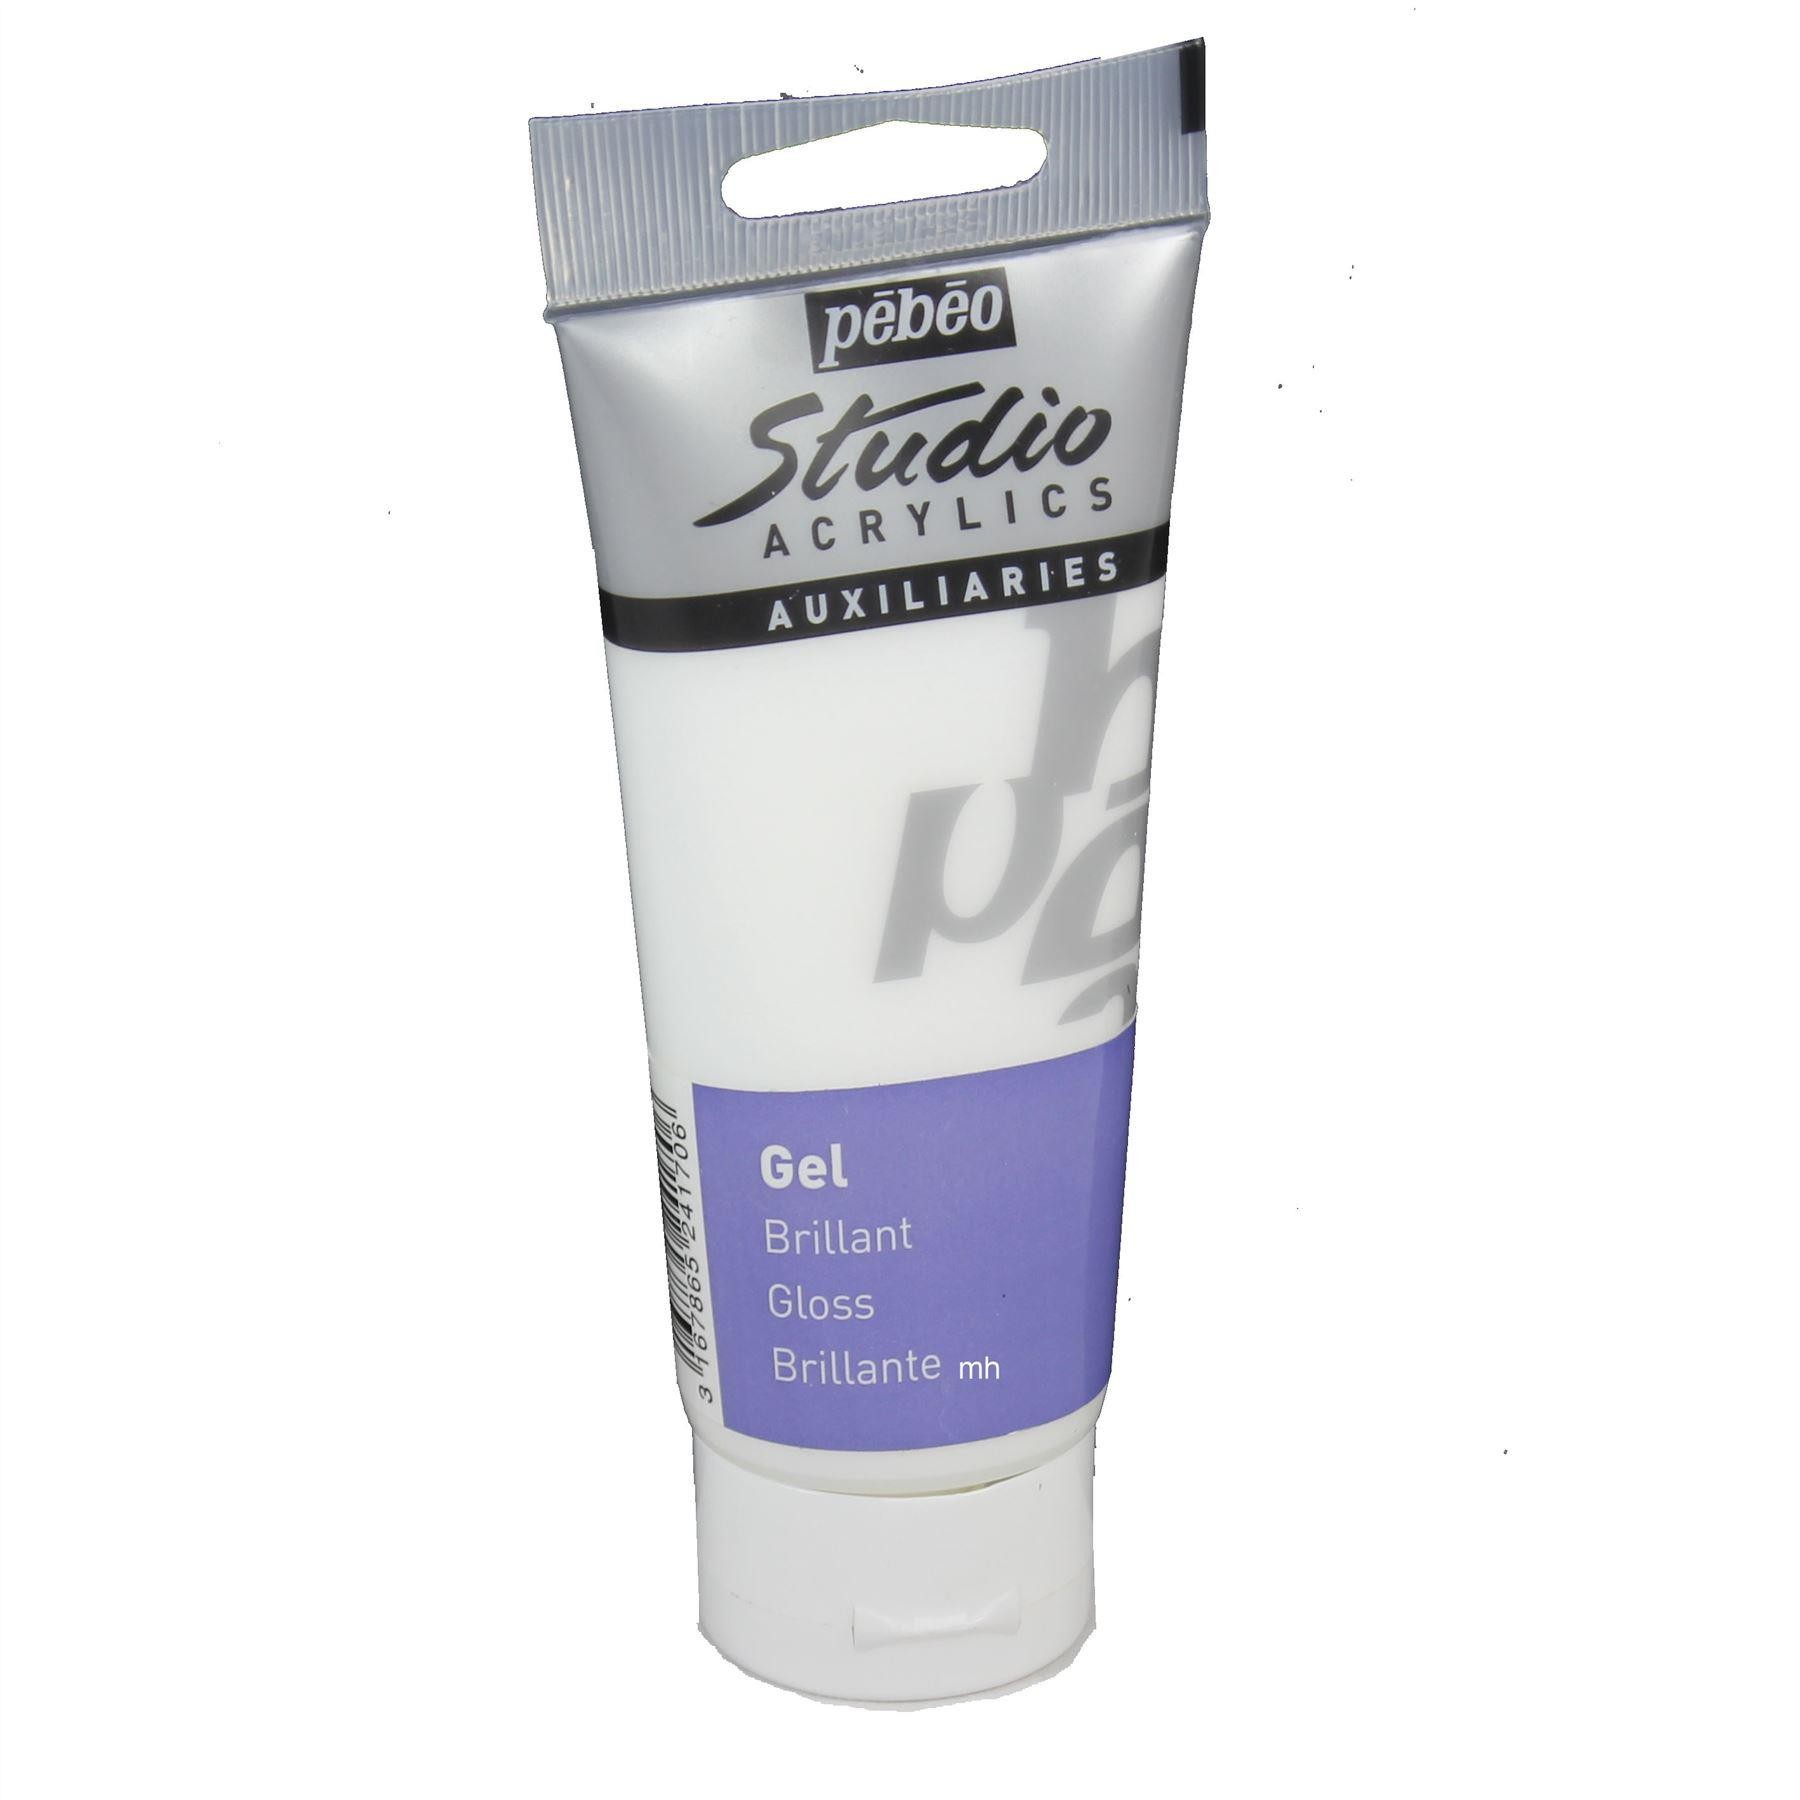 Pebeo Studio Acrylic Auxiliaries Gel, Matt or Gloss, 100ml or 250ml